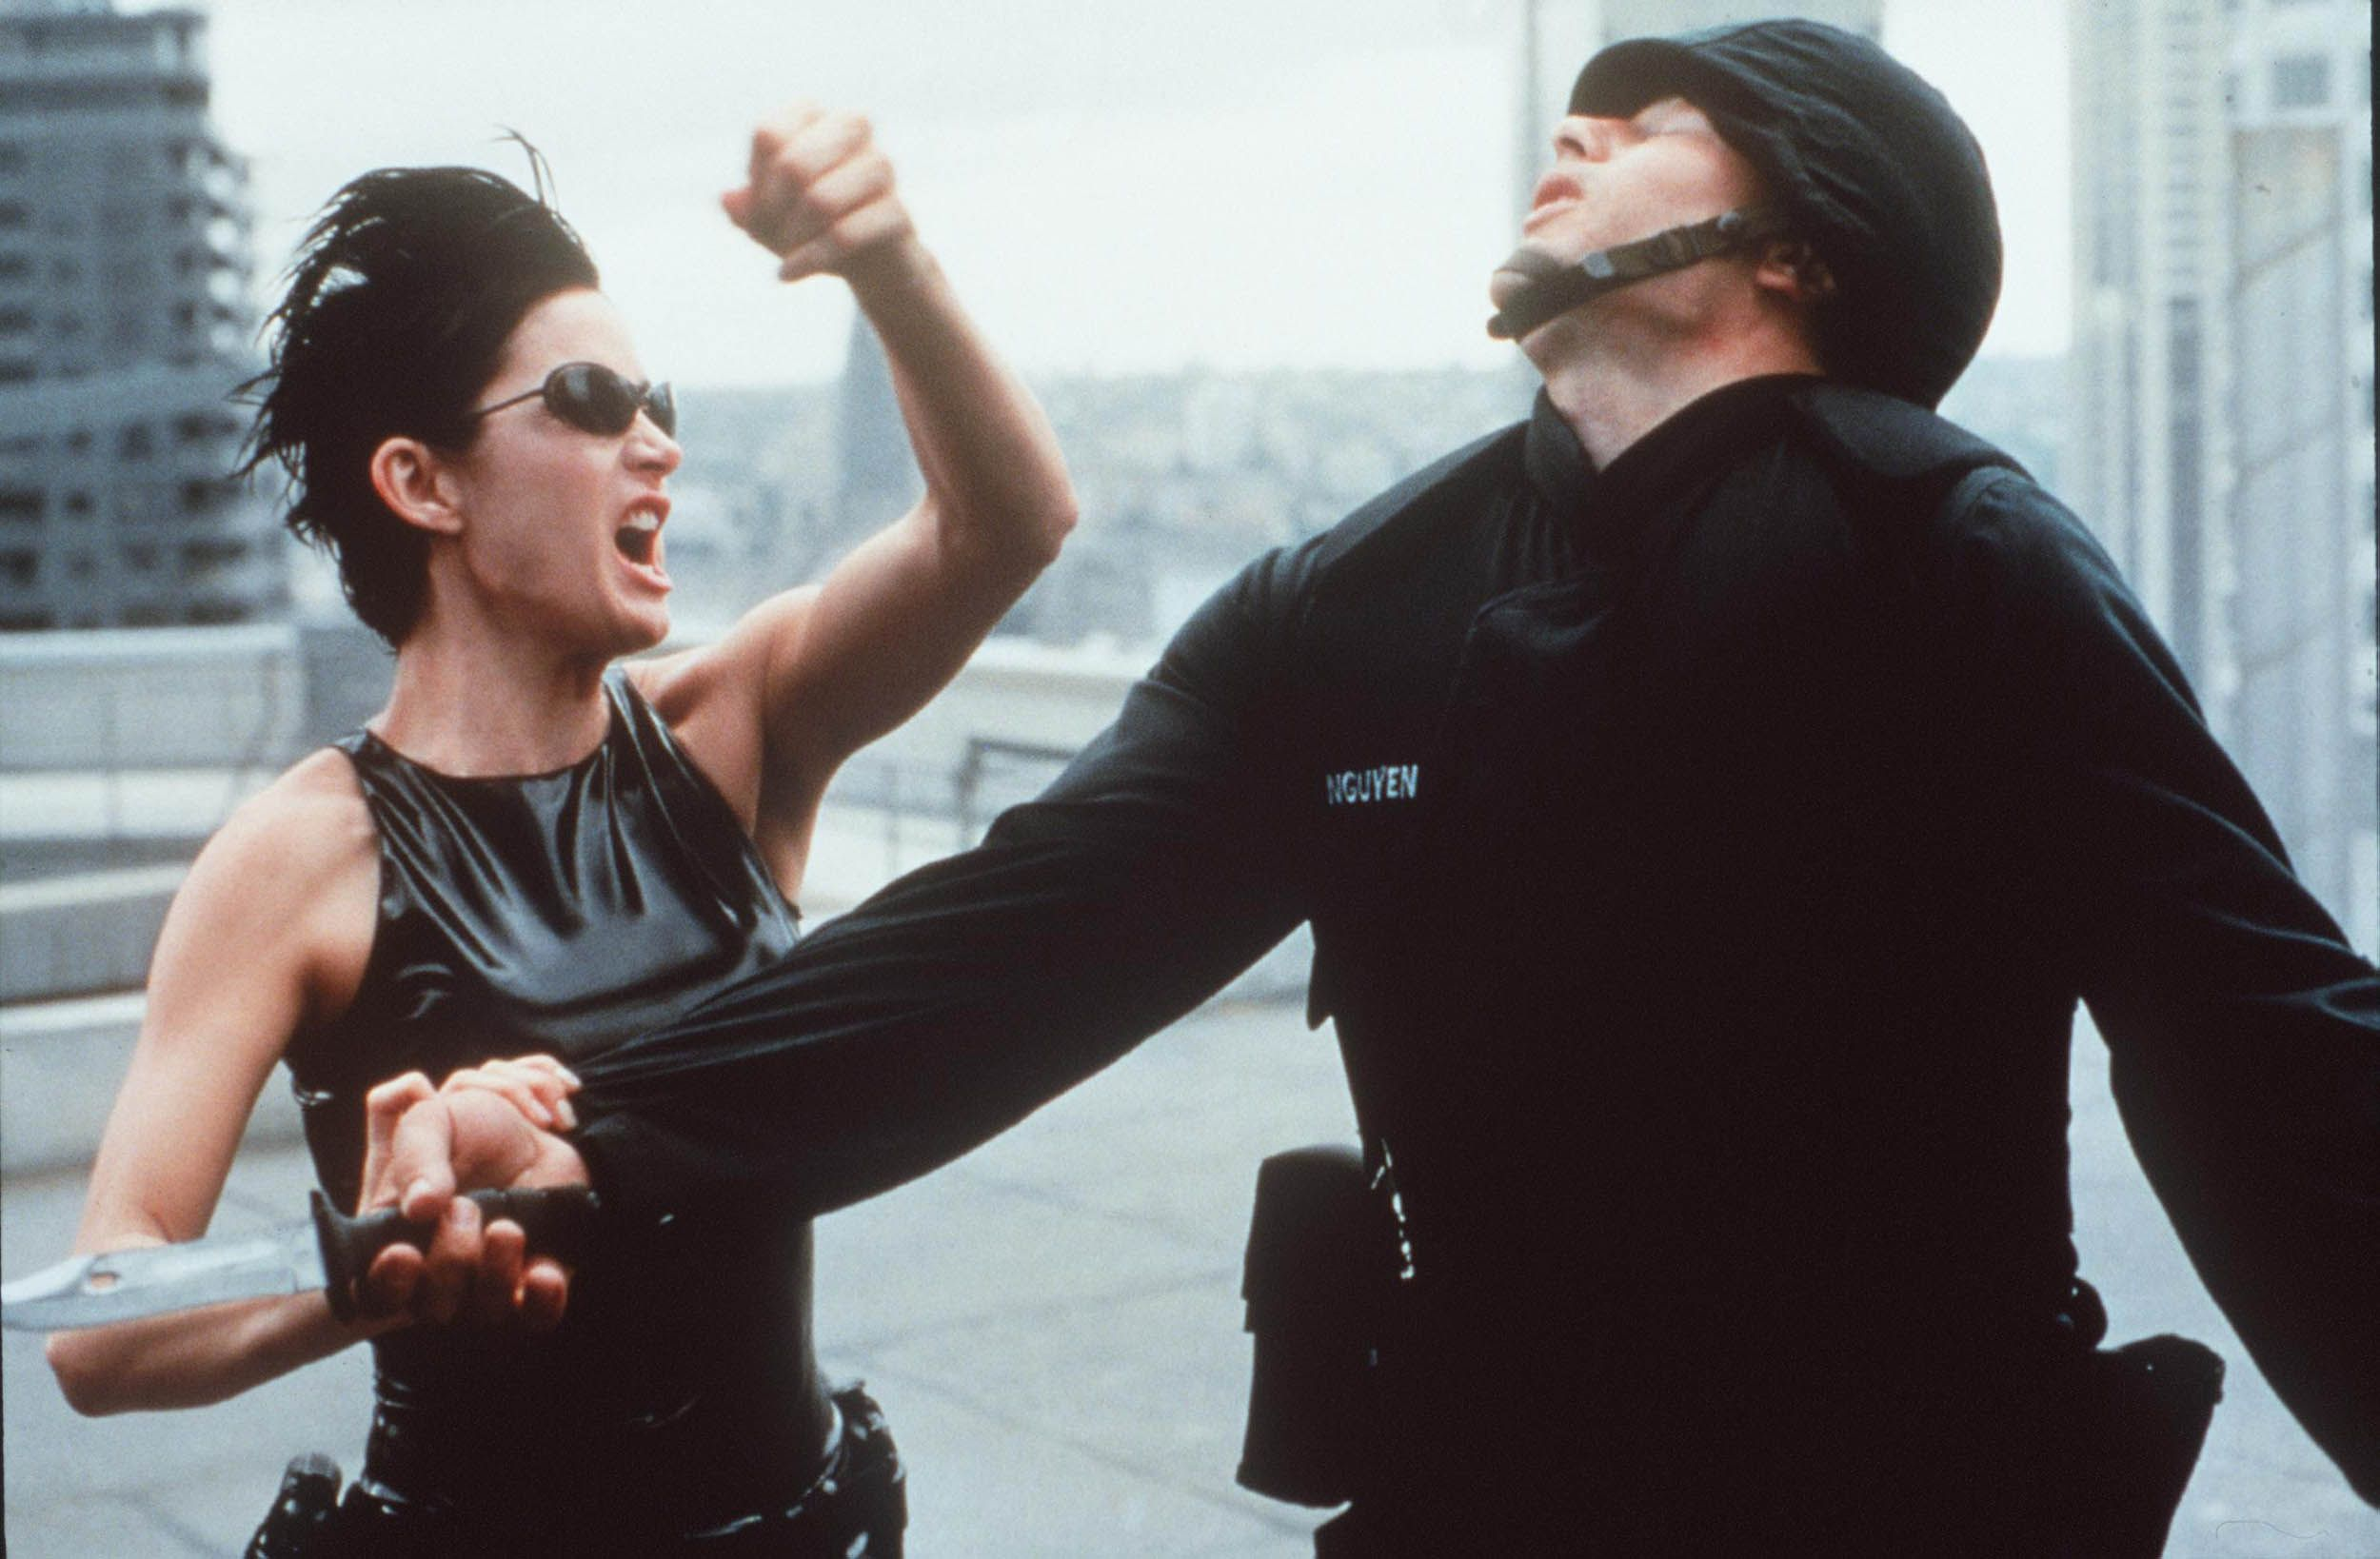 Carrie-Anne Moss in the 1999 film The Matrix.